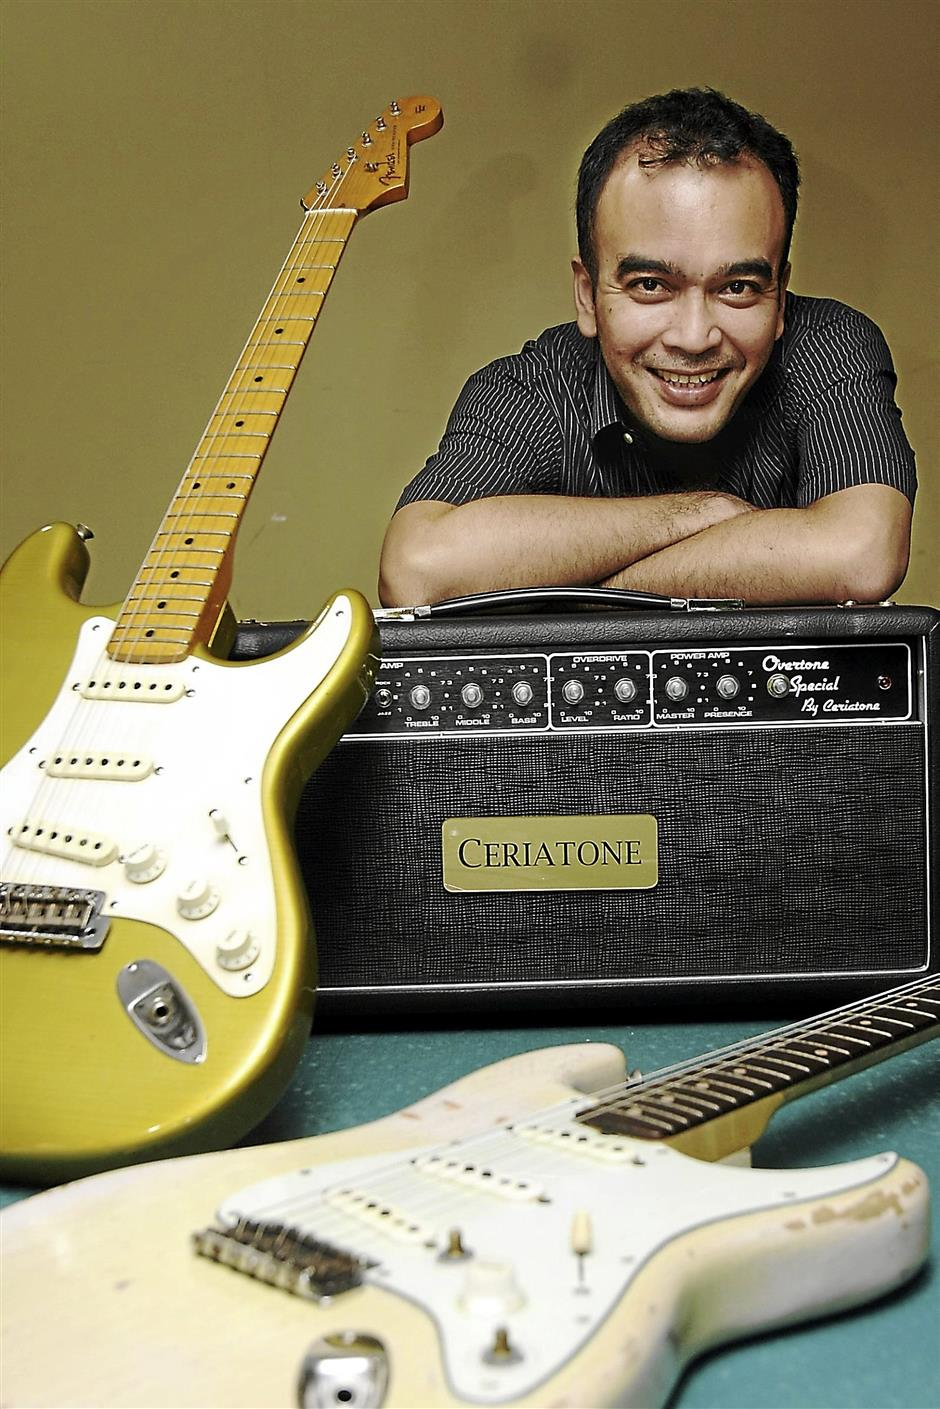 Nik Shazwan Nik Azam, MD, Ceriatone Amplification Sdn Bhd  played the guitar as a hobby and was familiar with all the forums and portals that are popular among amp lovers.For MetroBiz: Ceriatone Amplification has clients in 72 different countries across six continents and with US and Europe going strong this year, business may grow beyond expectations.